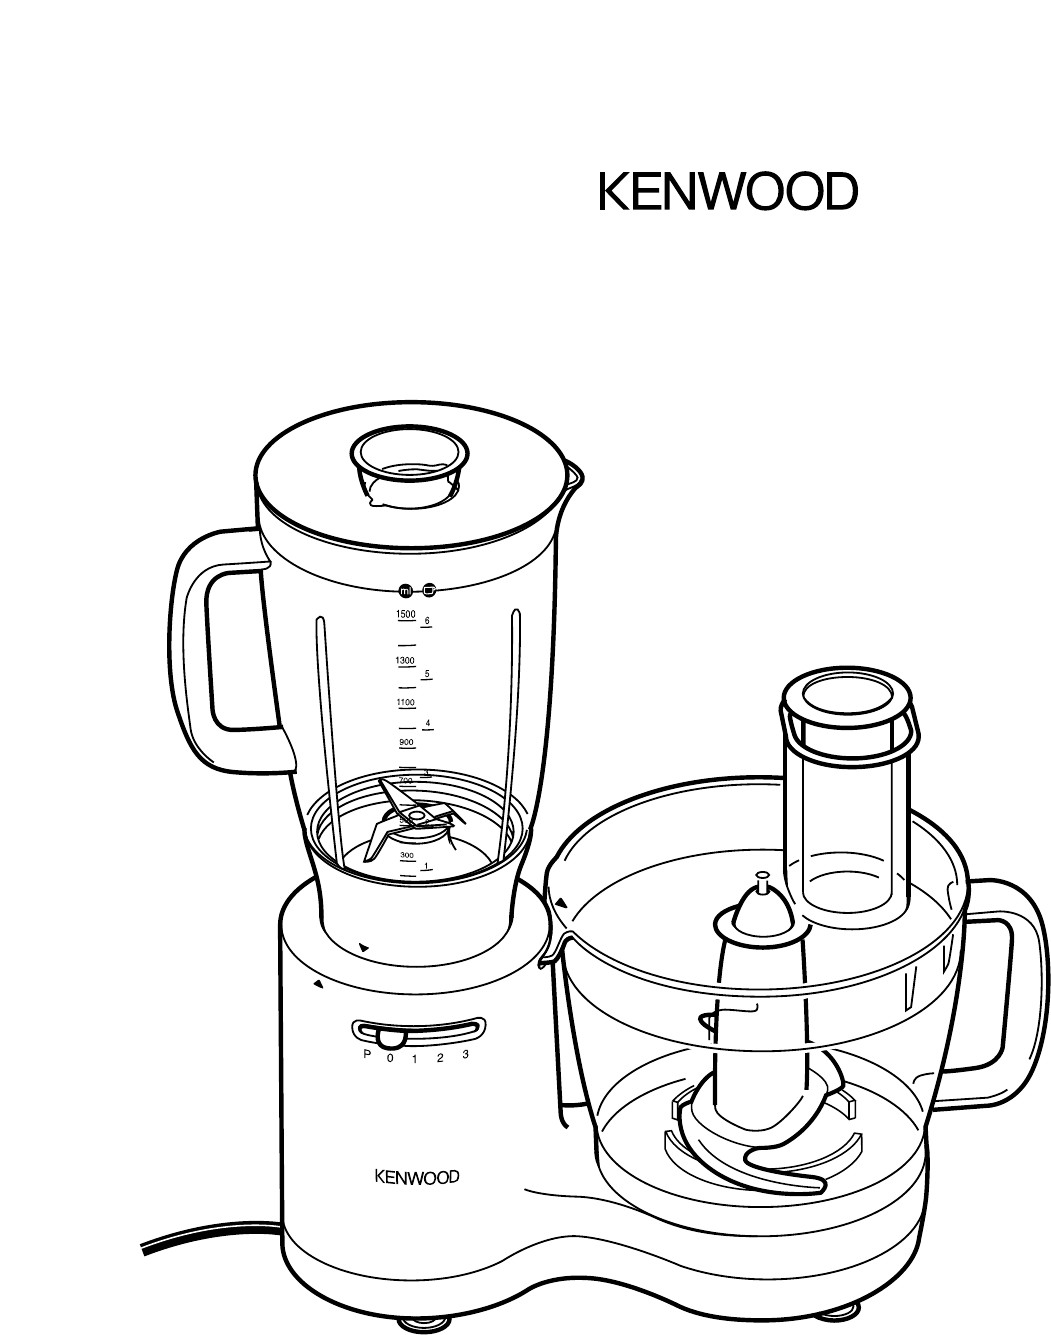 food processor drawing at getdrawings com free for personal use rh getdrawings com kenwood food processor manual fp120 kenwood food processor fp180 manual